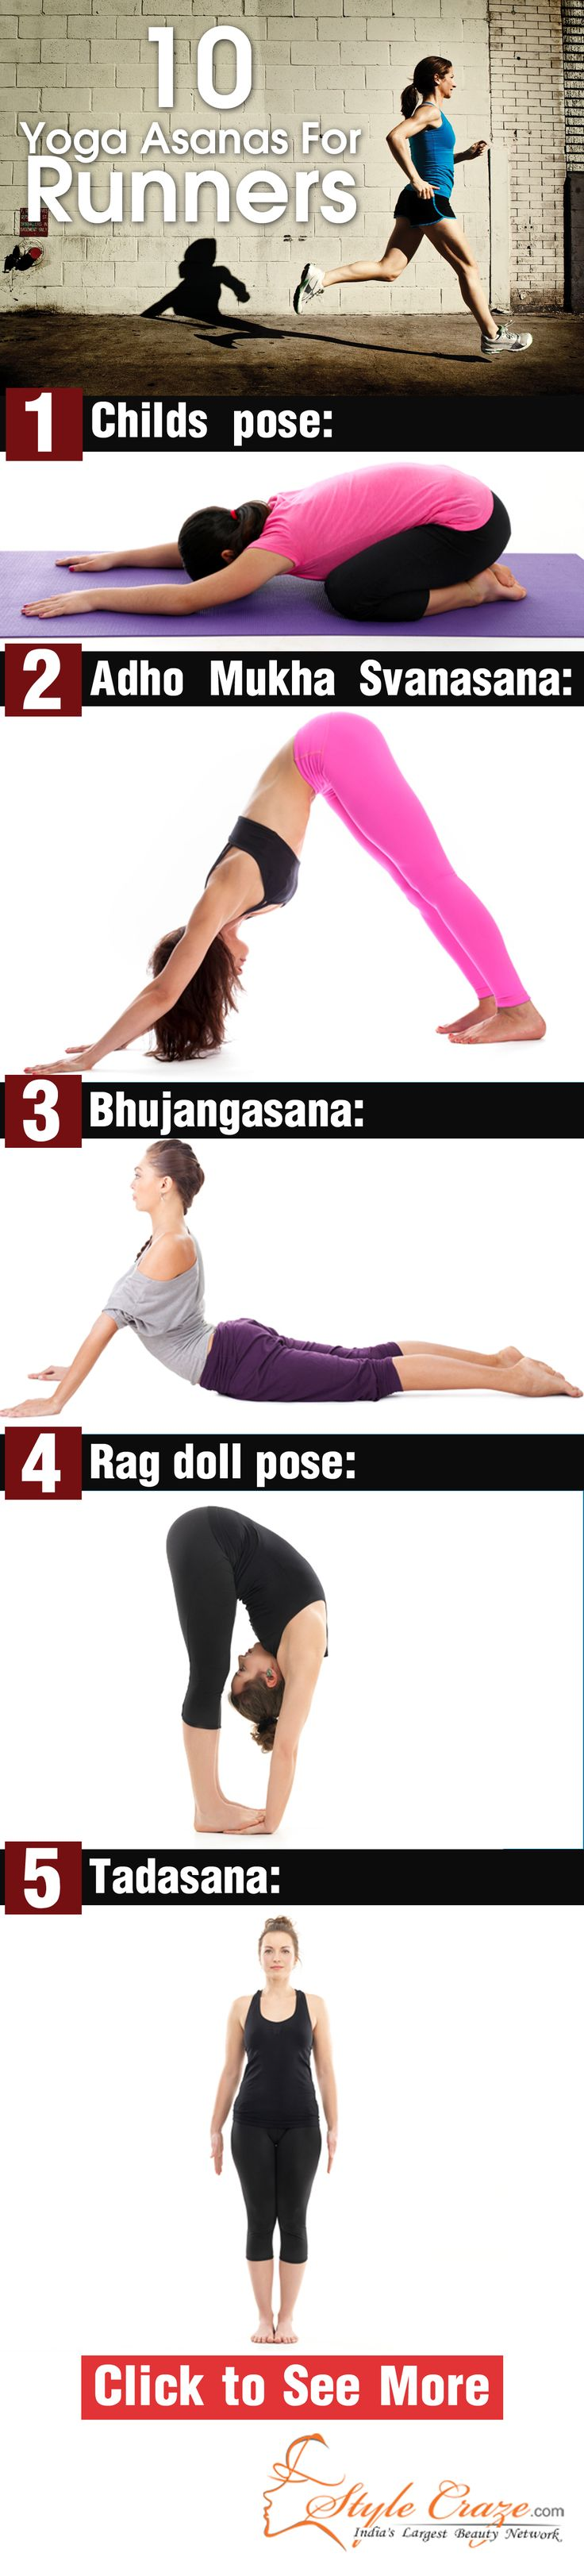 Running is a tough workout and to keep in shape for it many practice yoga too. Here are the poses that are included in the yoga for runners module. | See more about runners, yoga and children poses.